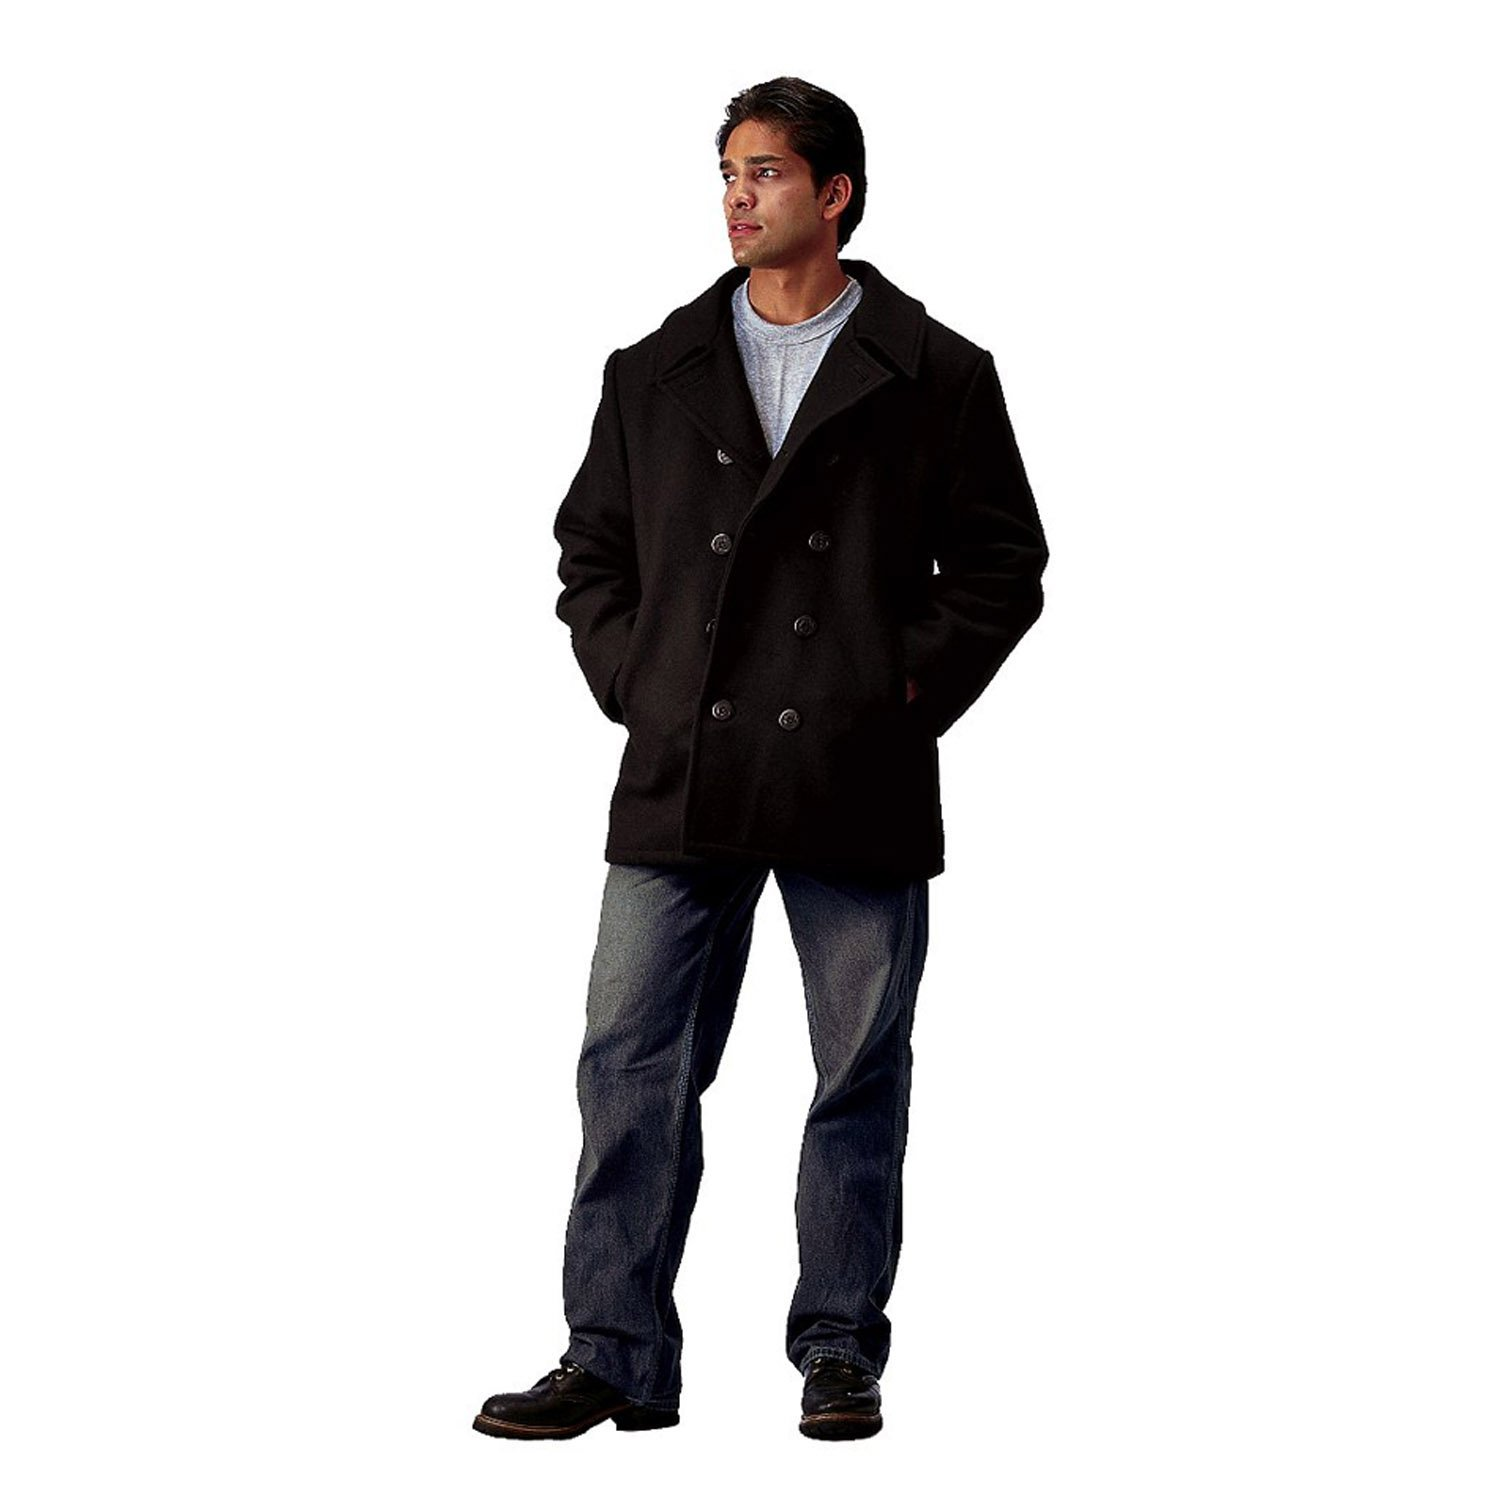 Rothco 7070 Black US Navy Type Peacoat